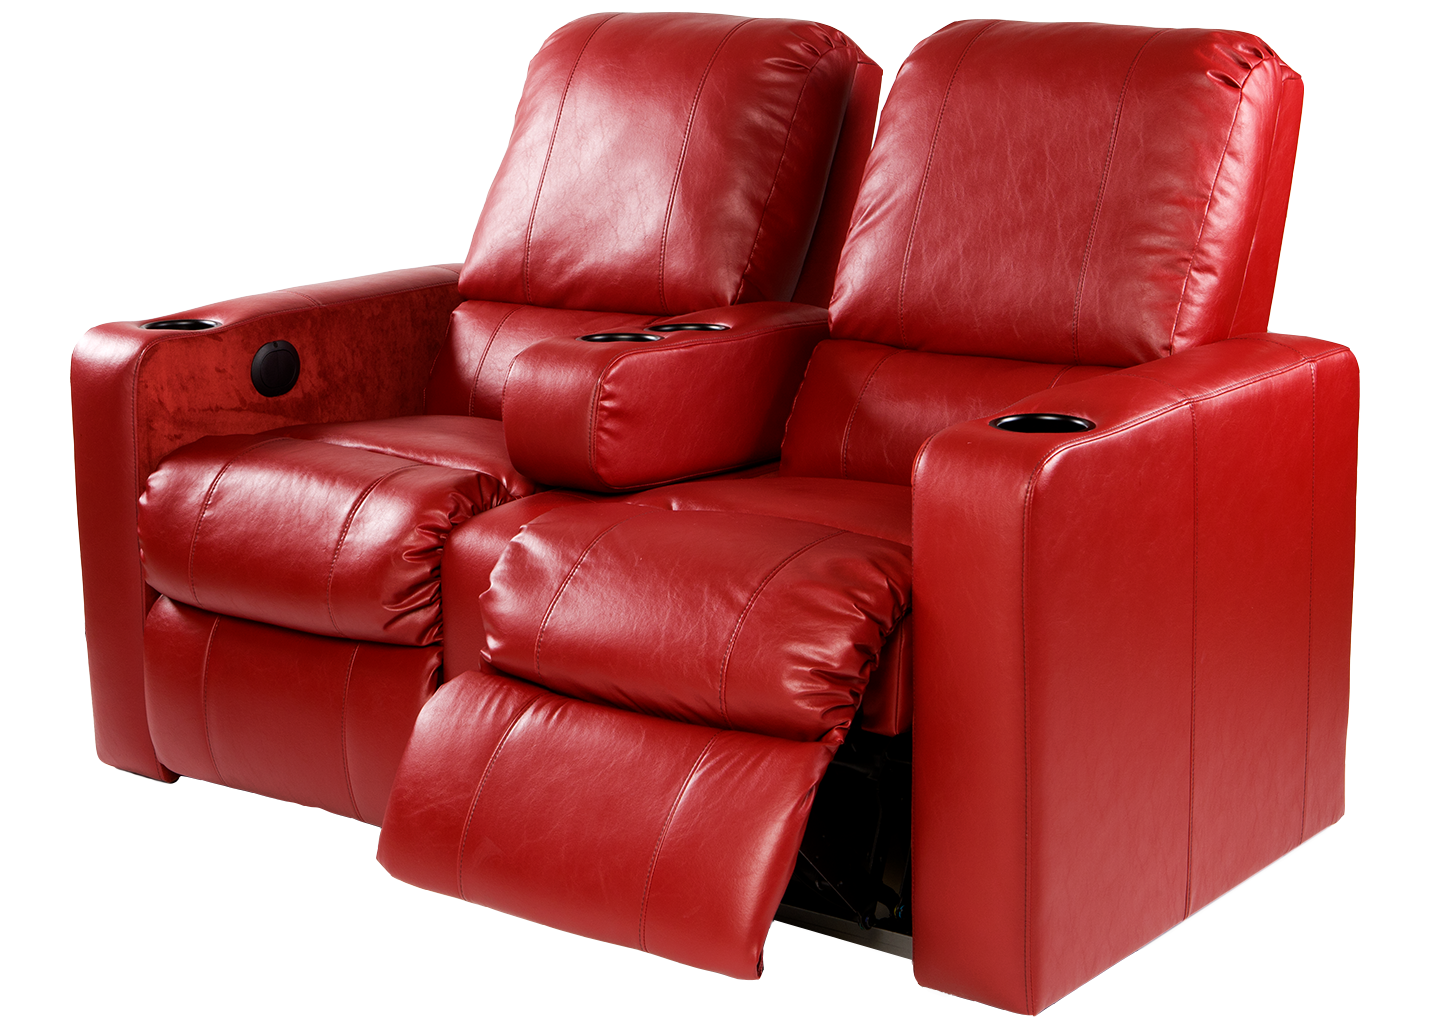 Full on Fun with AMC Full Recliners ...  sc 1 st  AMC Theatres : dream lounger recliner - islam-shia.org